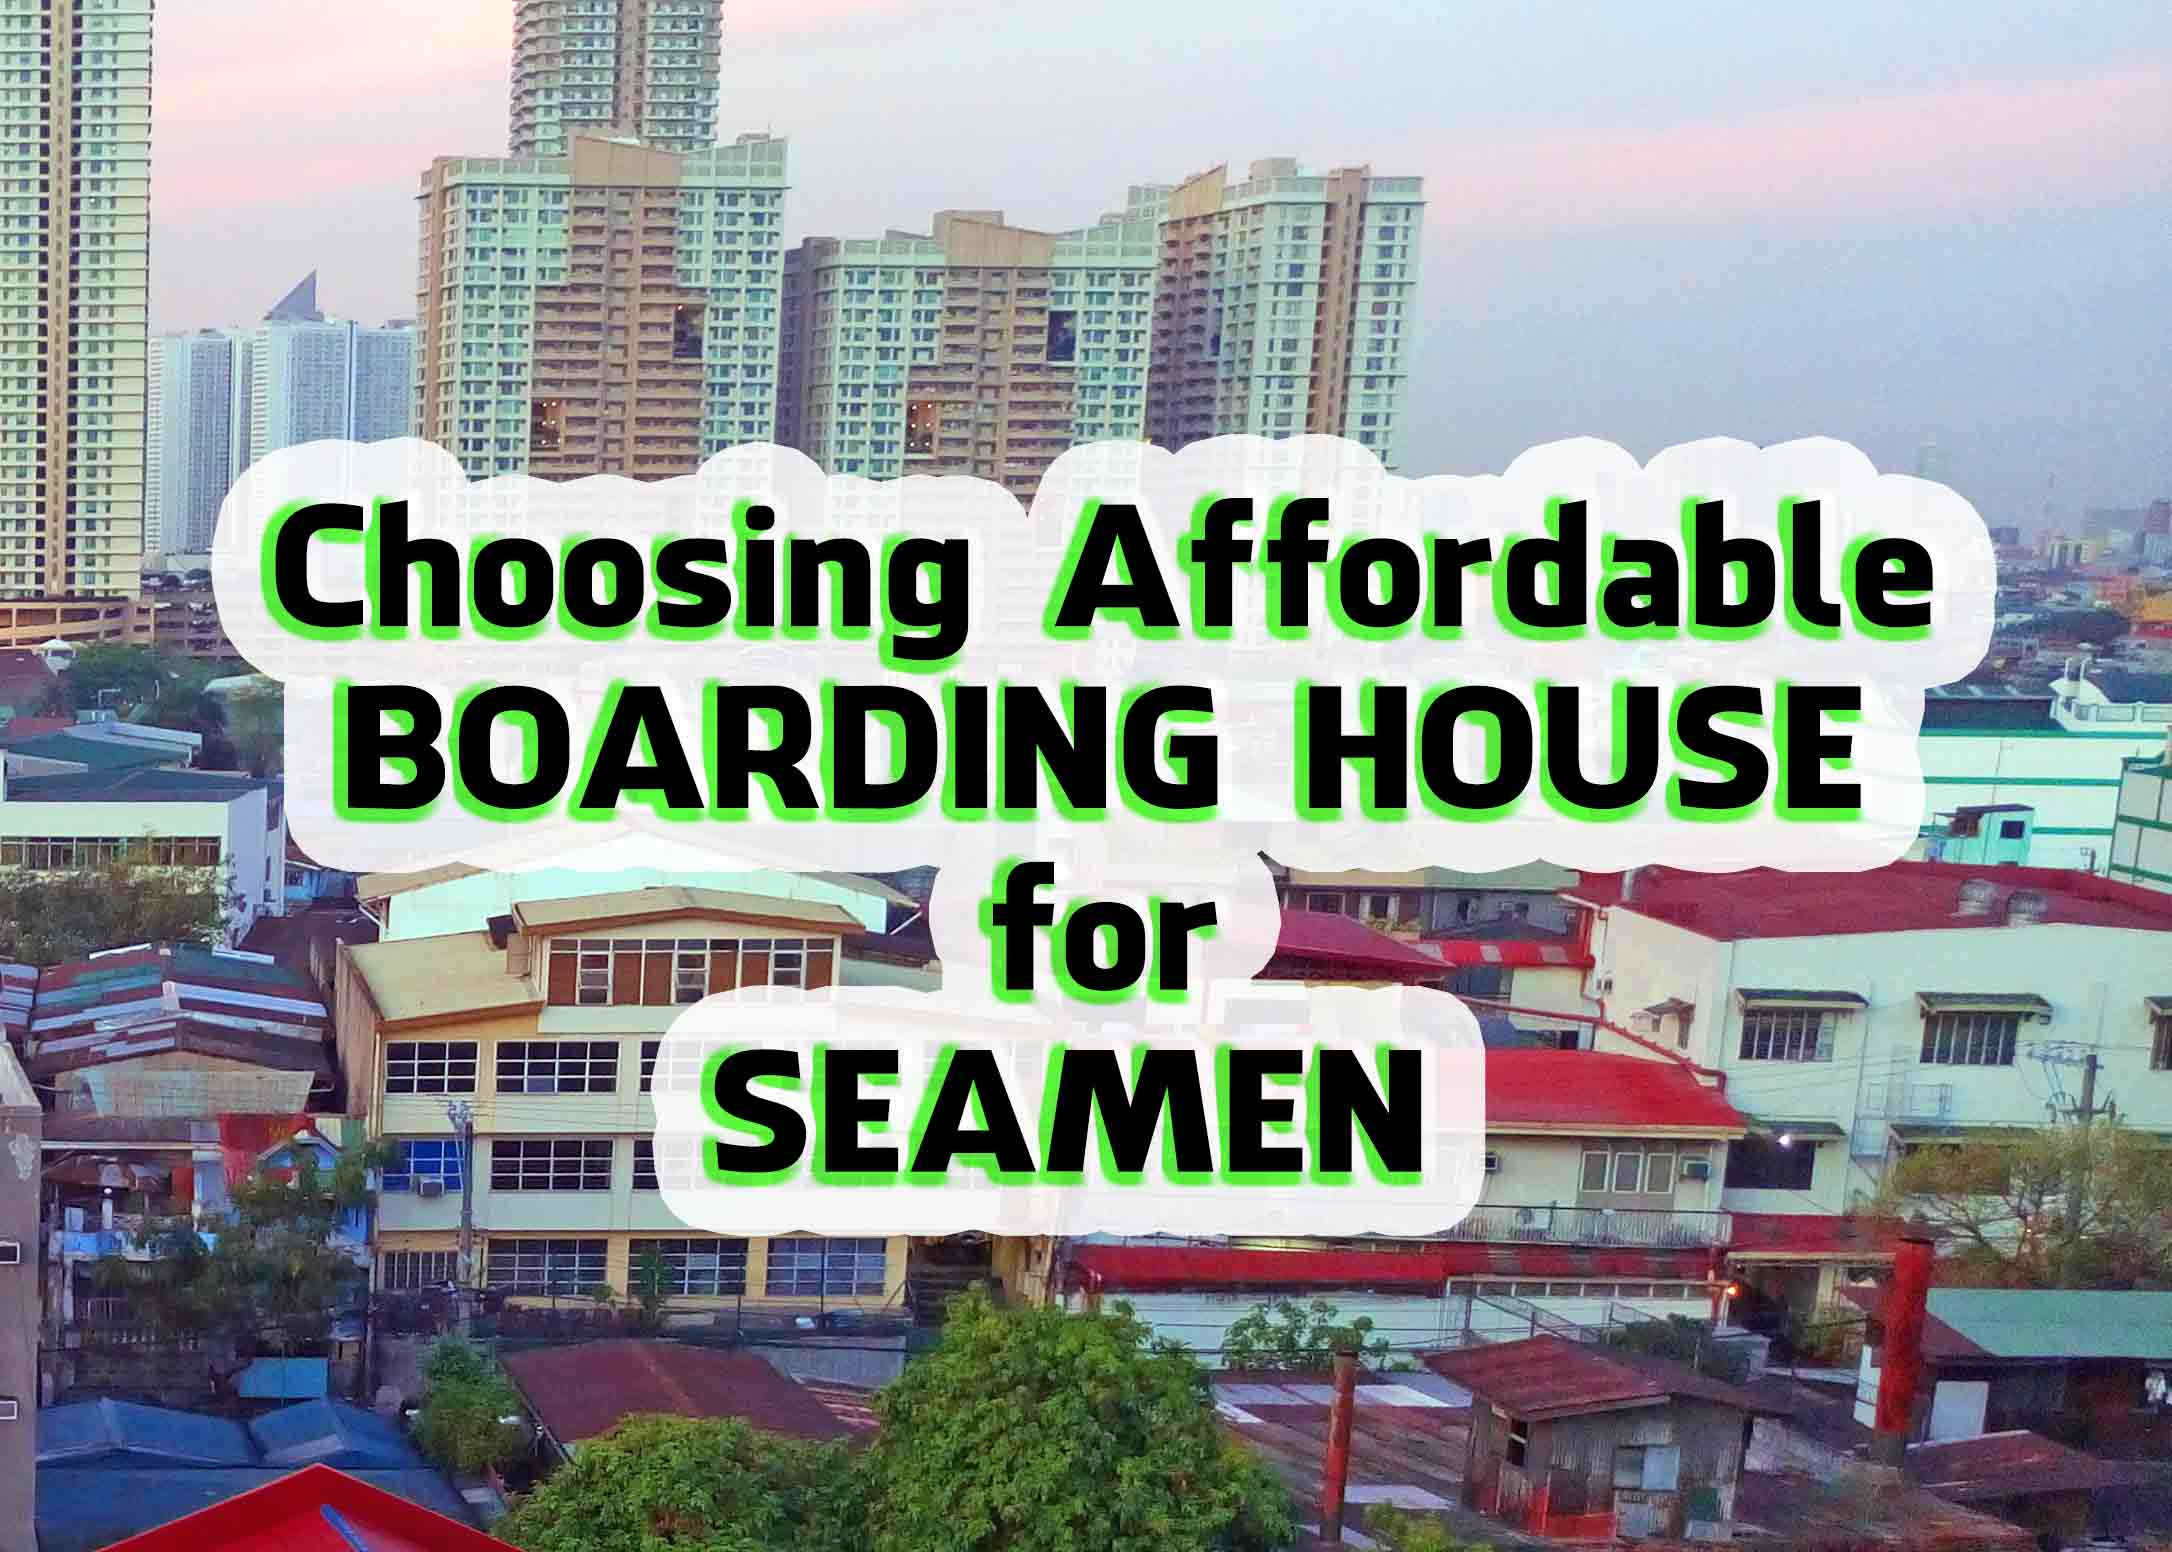 Choosing the right seamans boarding house for your budget